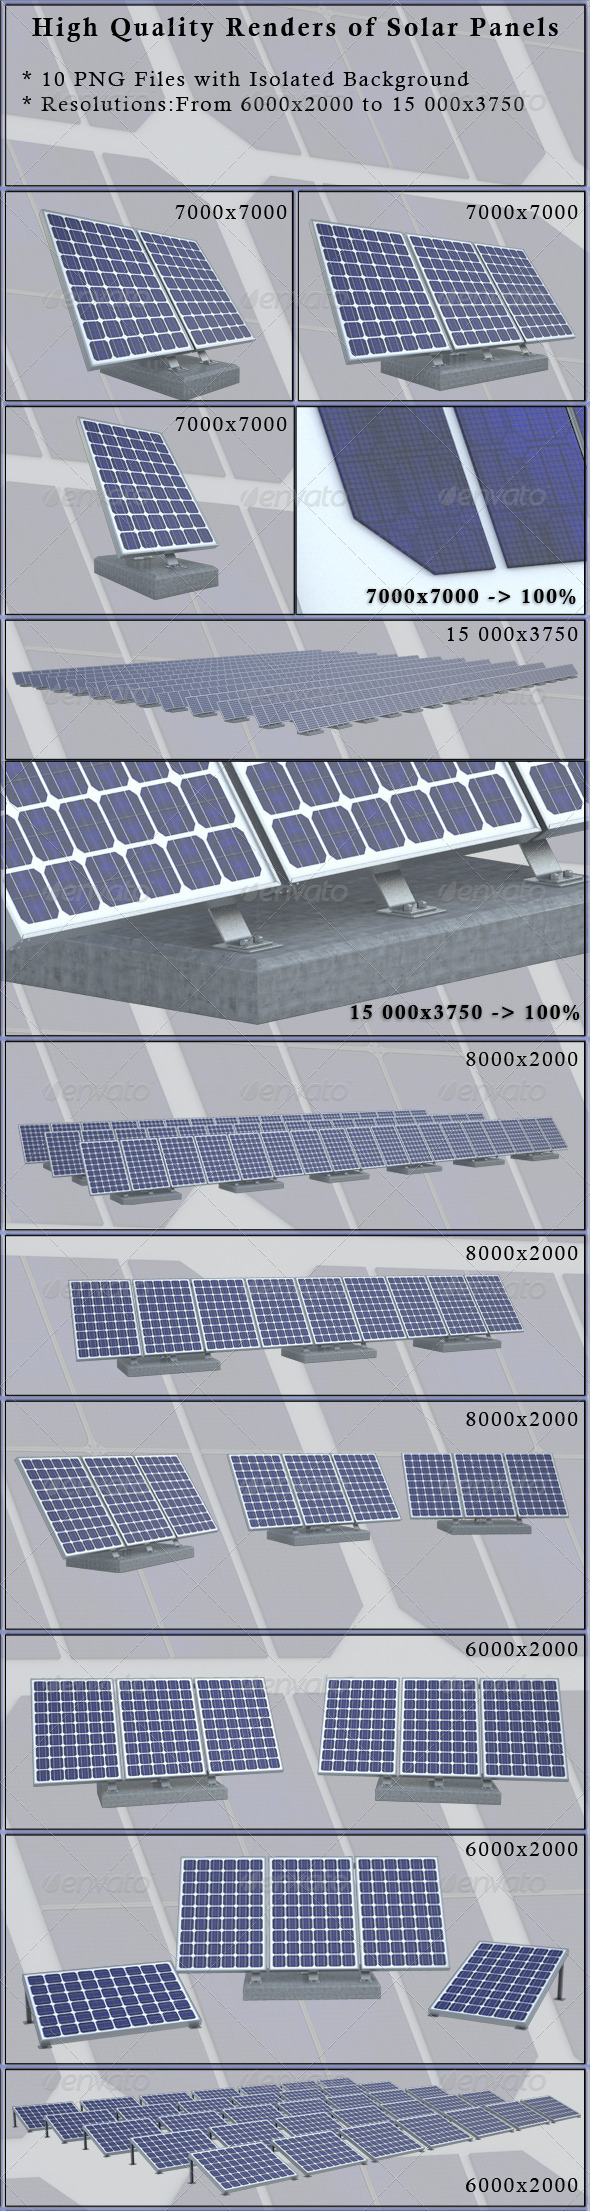 Solar Panels - Technology 3D Renders